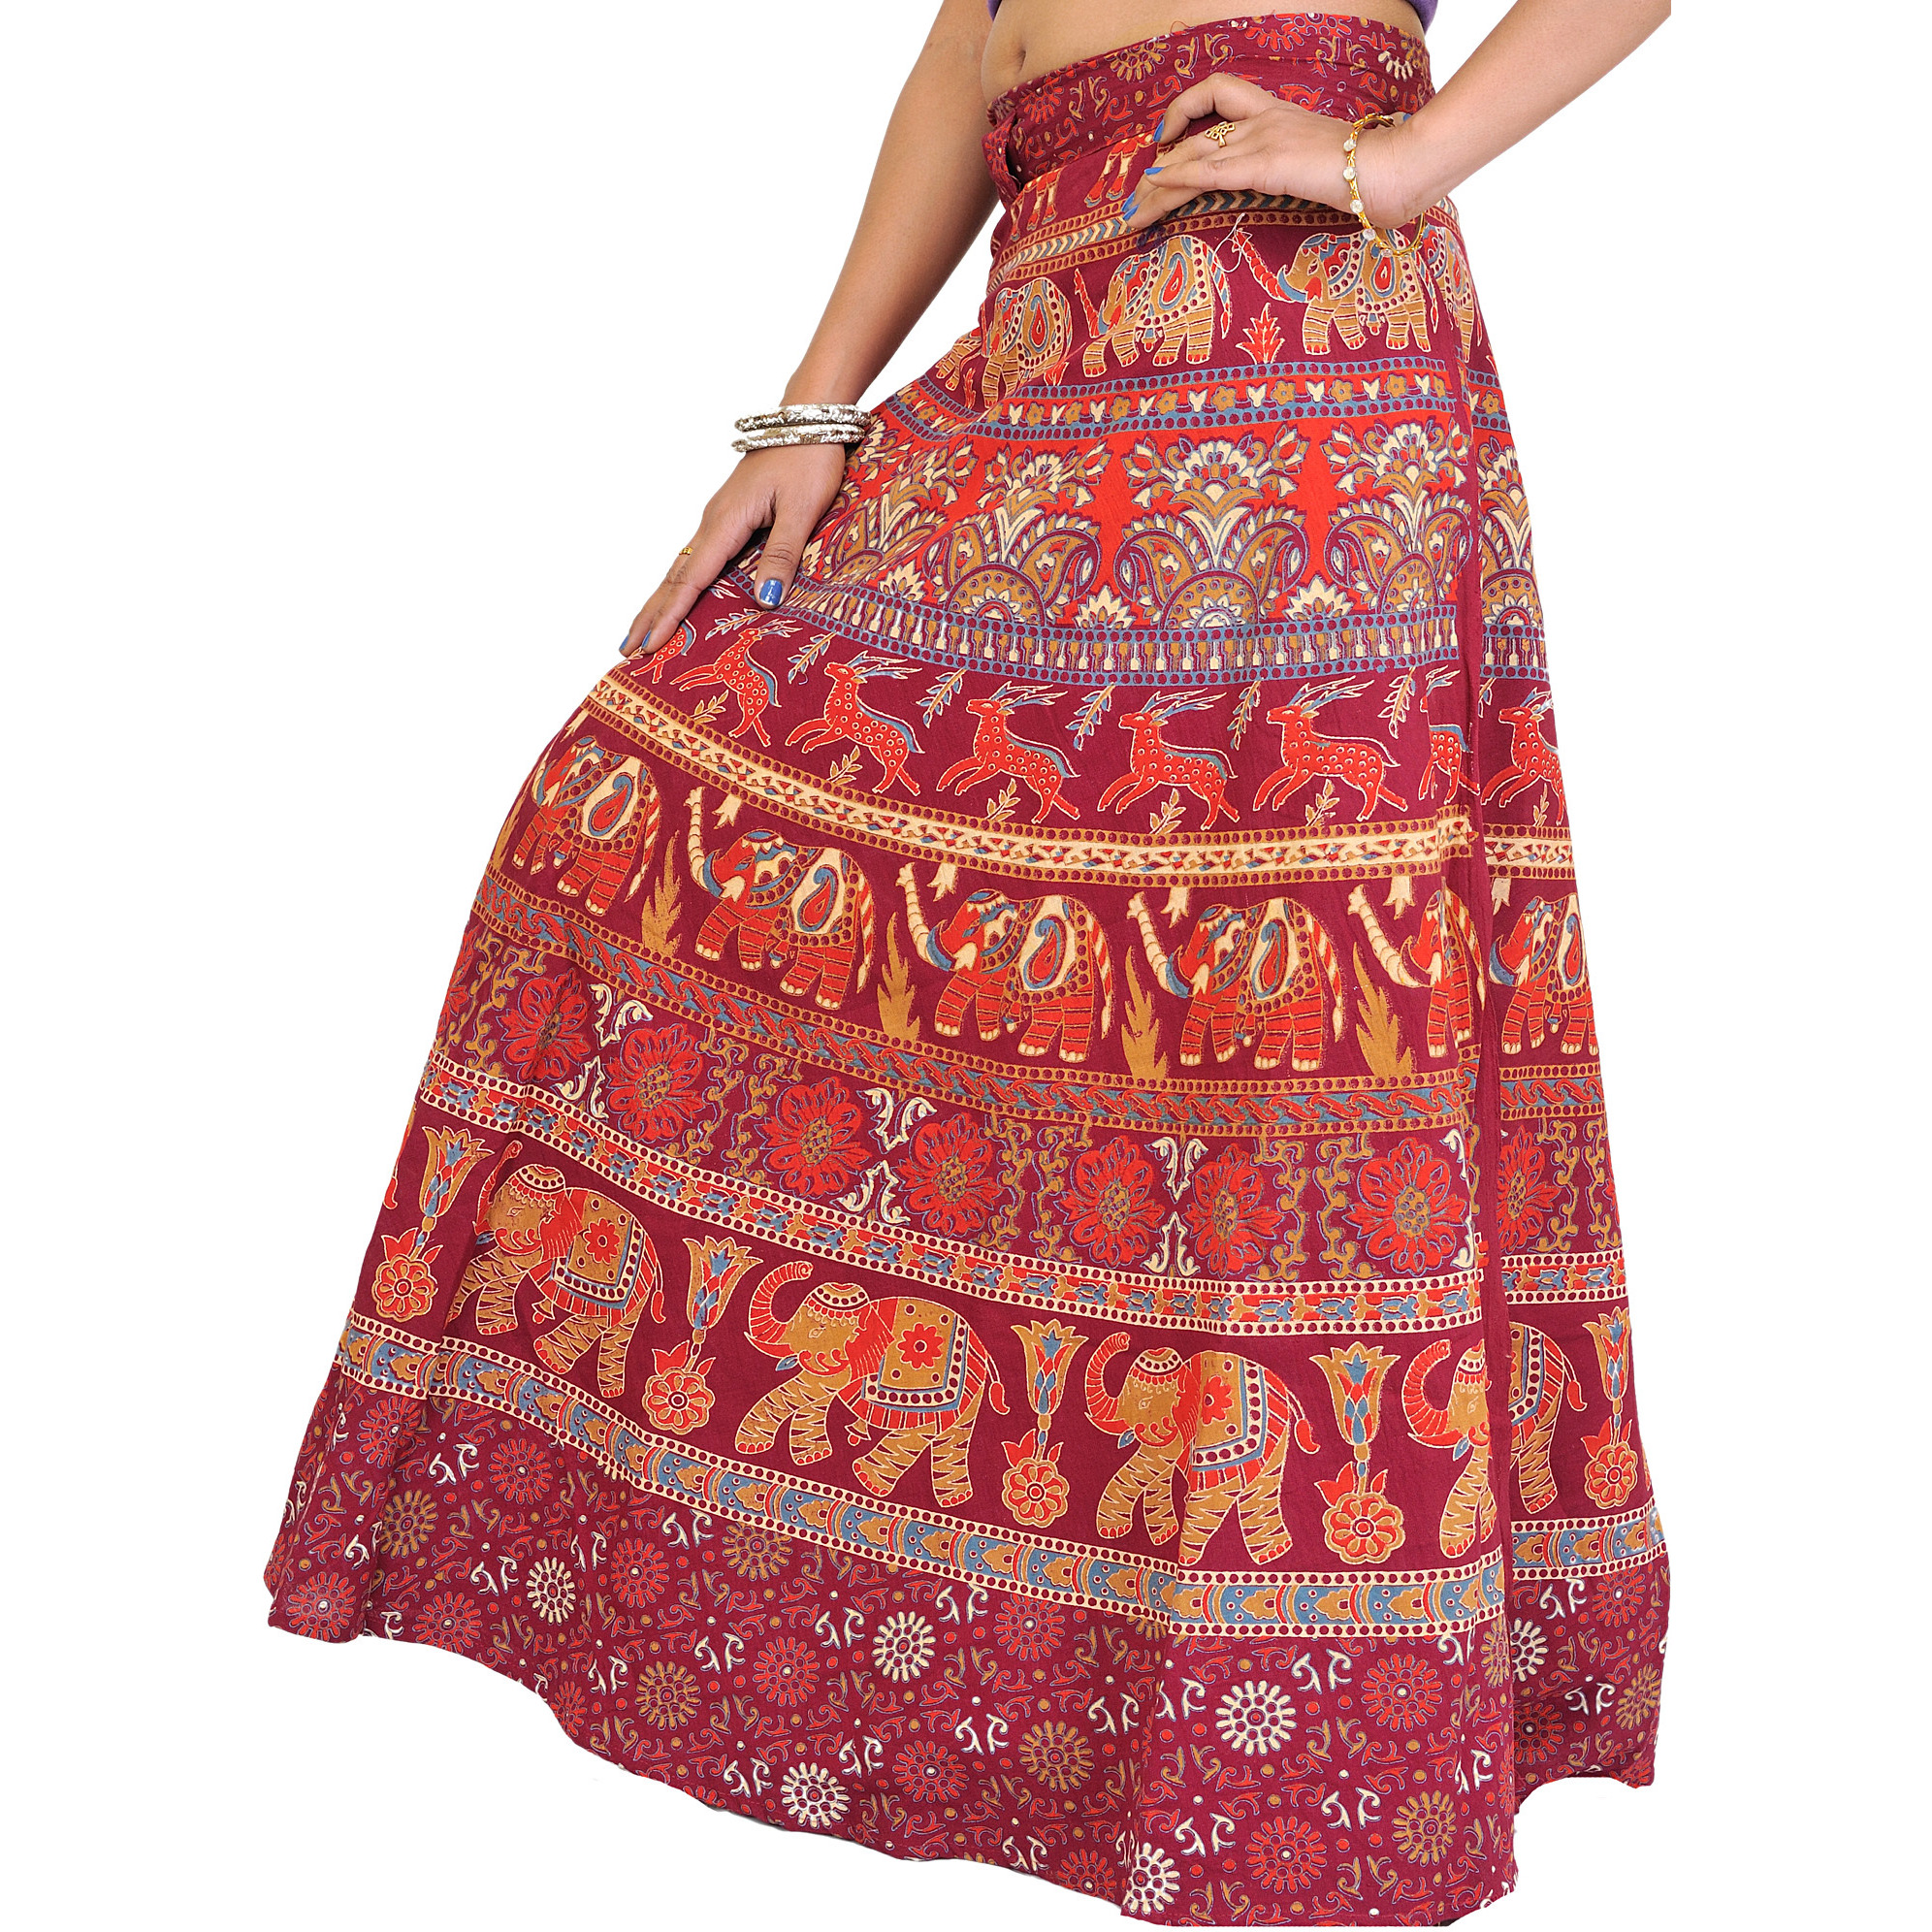 Wrap-Around Long Skirt with Printed Elephants and Deer